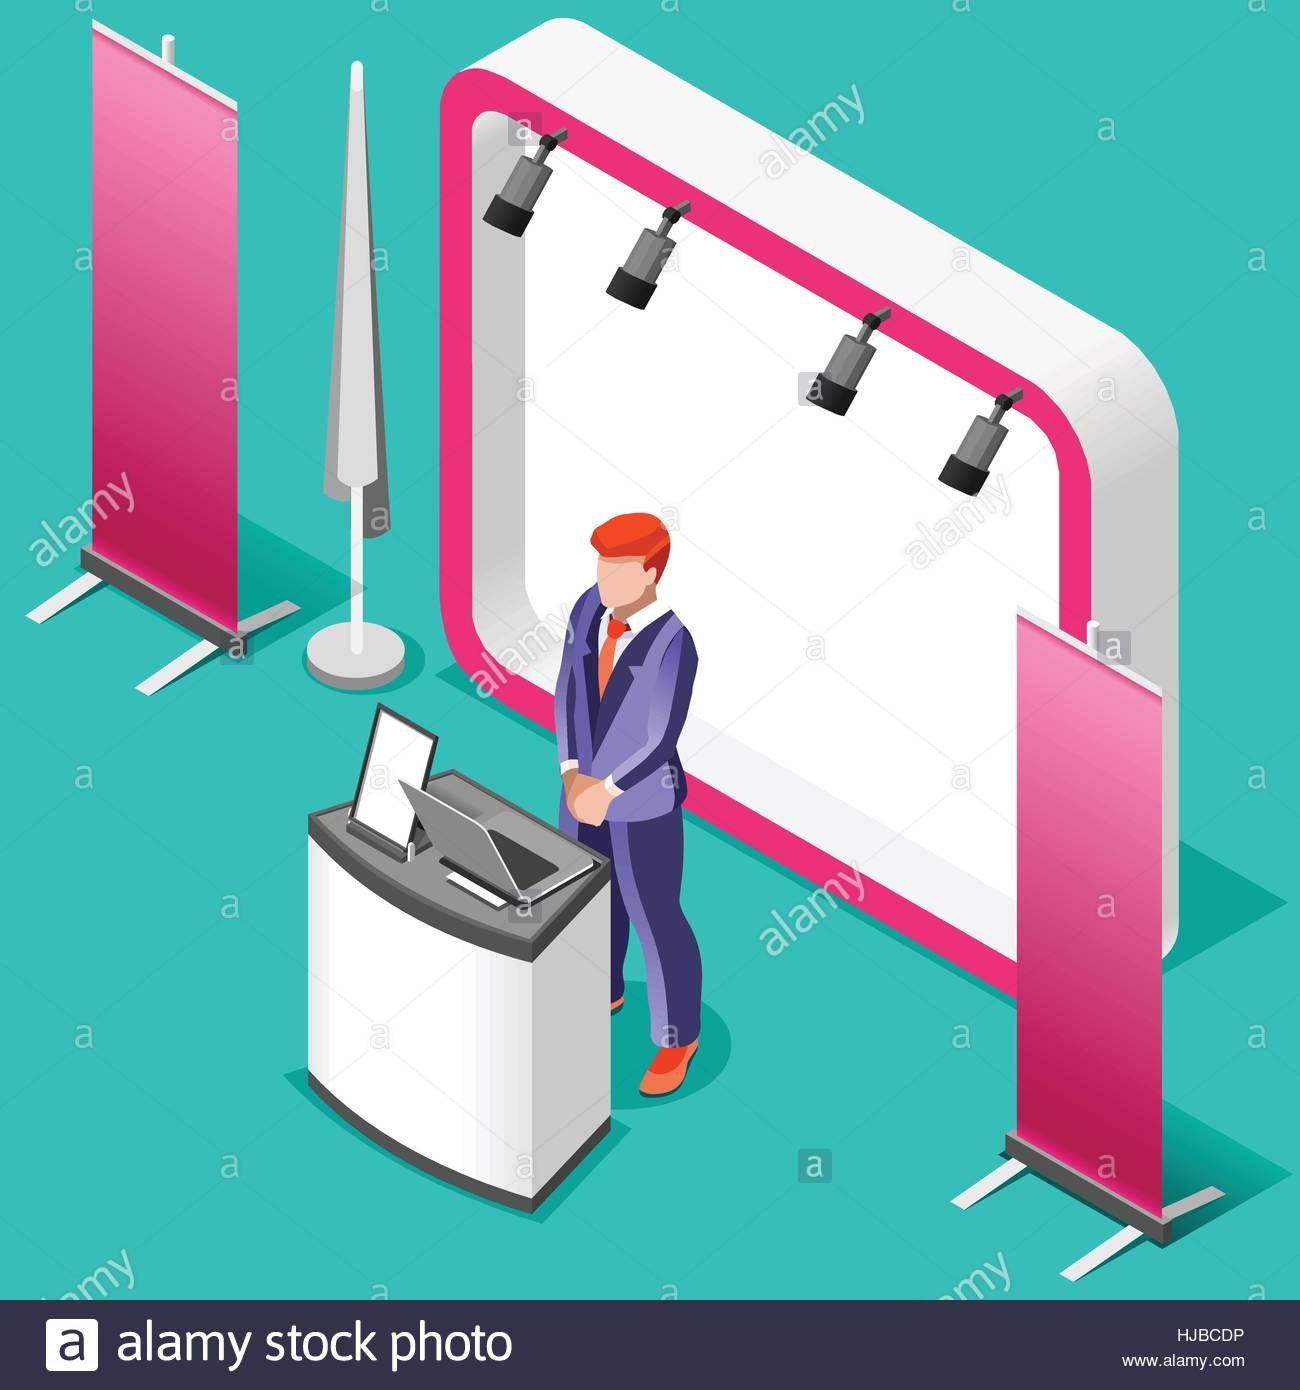 Exhibition Stand Icon : Exhibition booth stand desk roll up display panel d